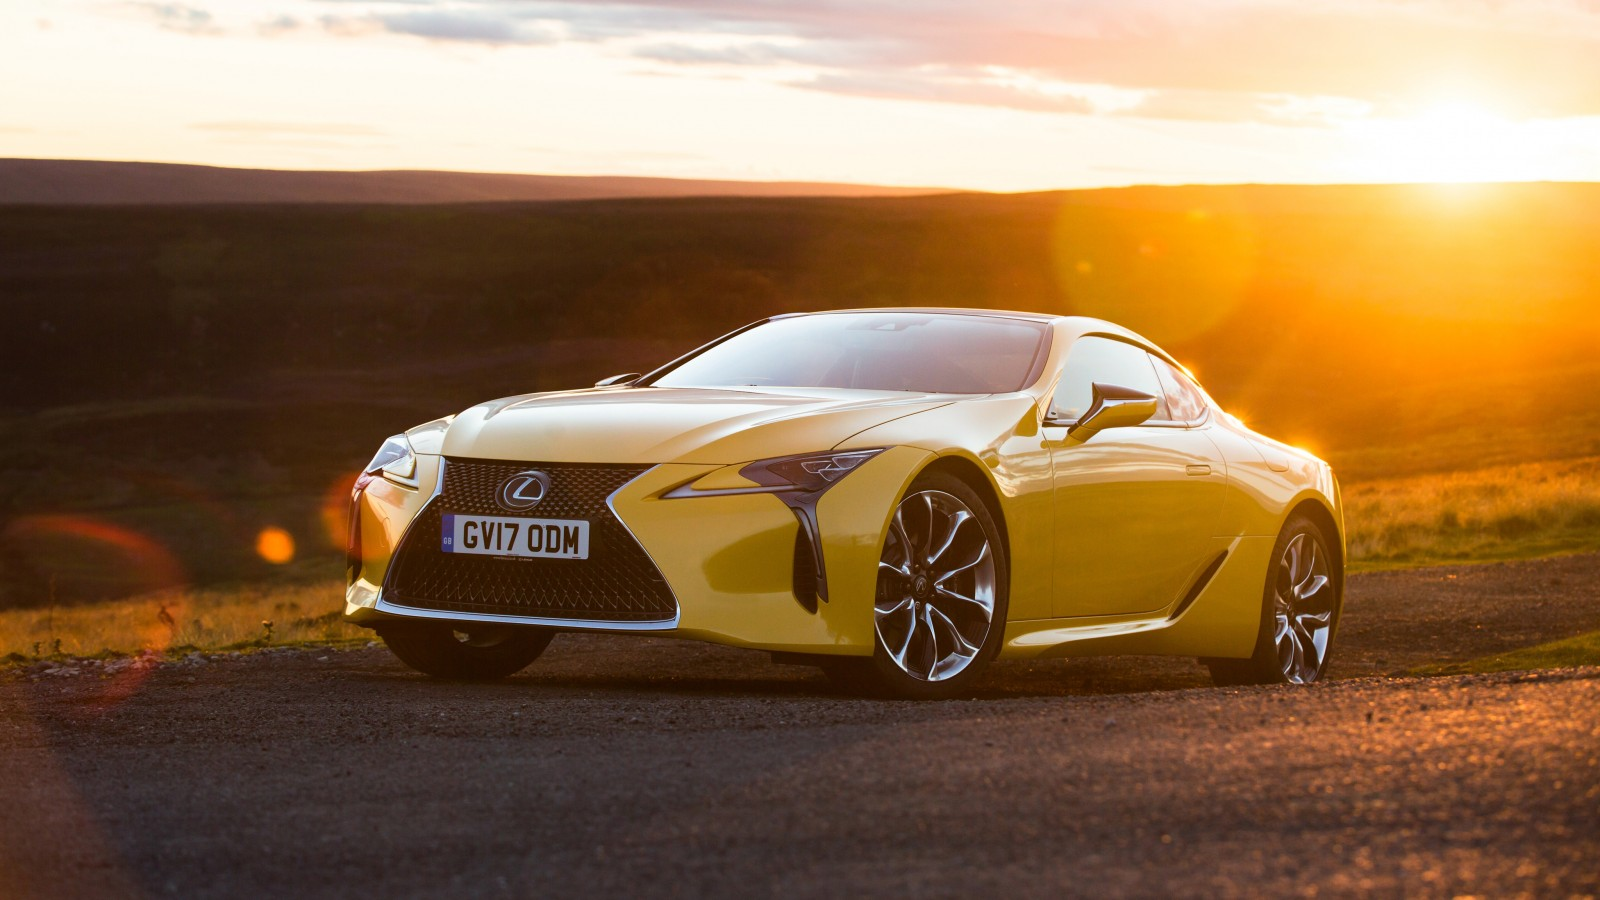 High Quality Car Pictures And Car Wallpapers 2018 Lexus Lc 500 13 Wallpaper Hd Car Wallpapers Id 8246